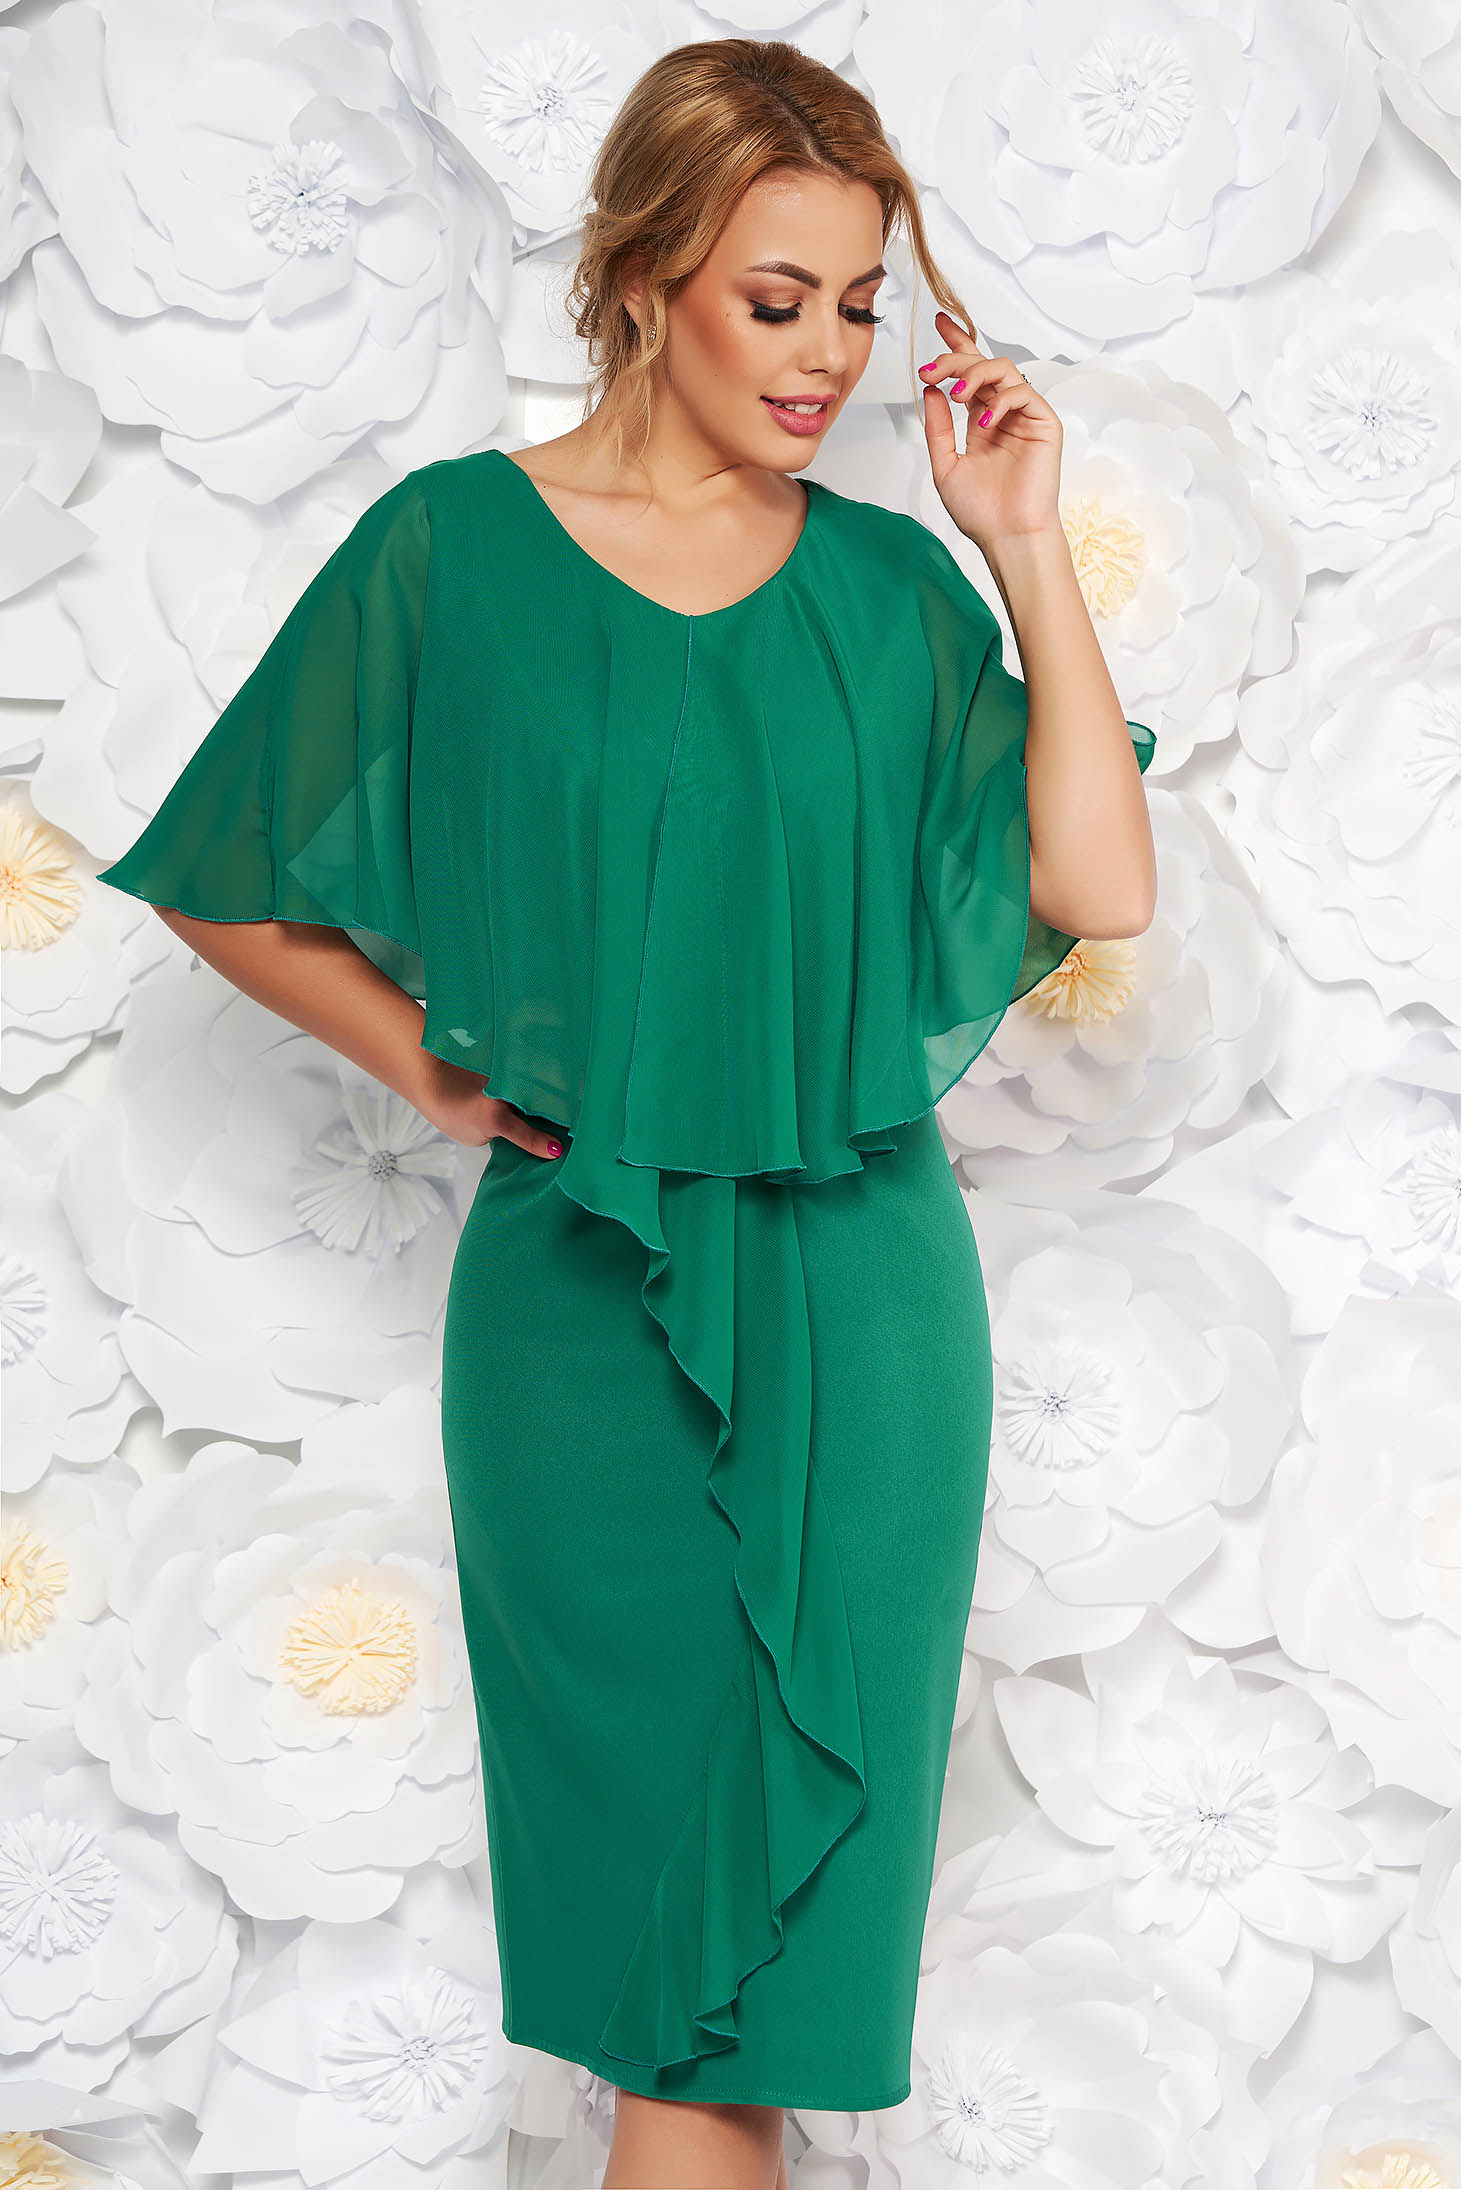 Green occasional sleeveless midi dress arched cut slightly elastic fabric voile overlay